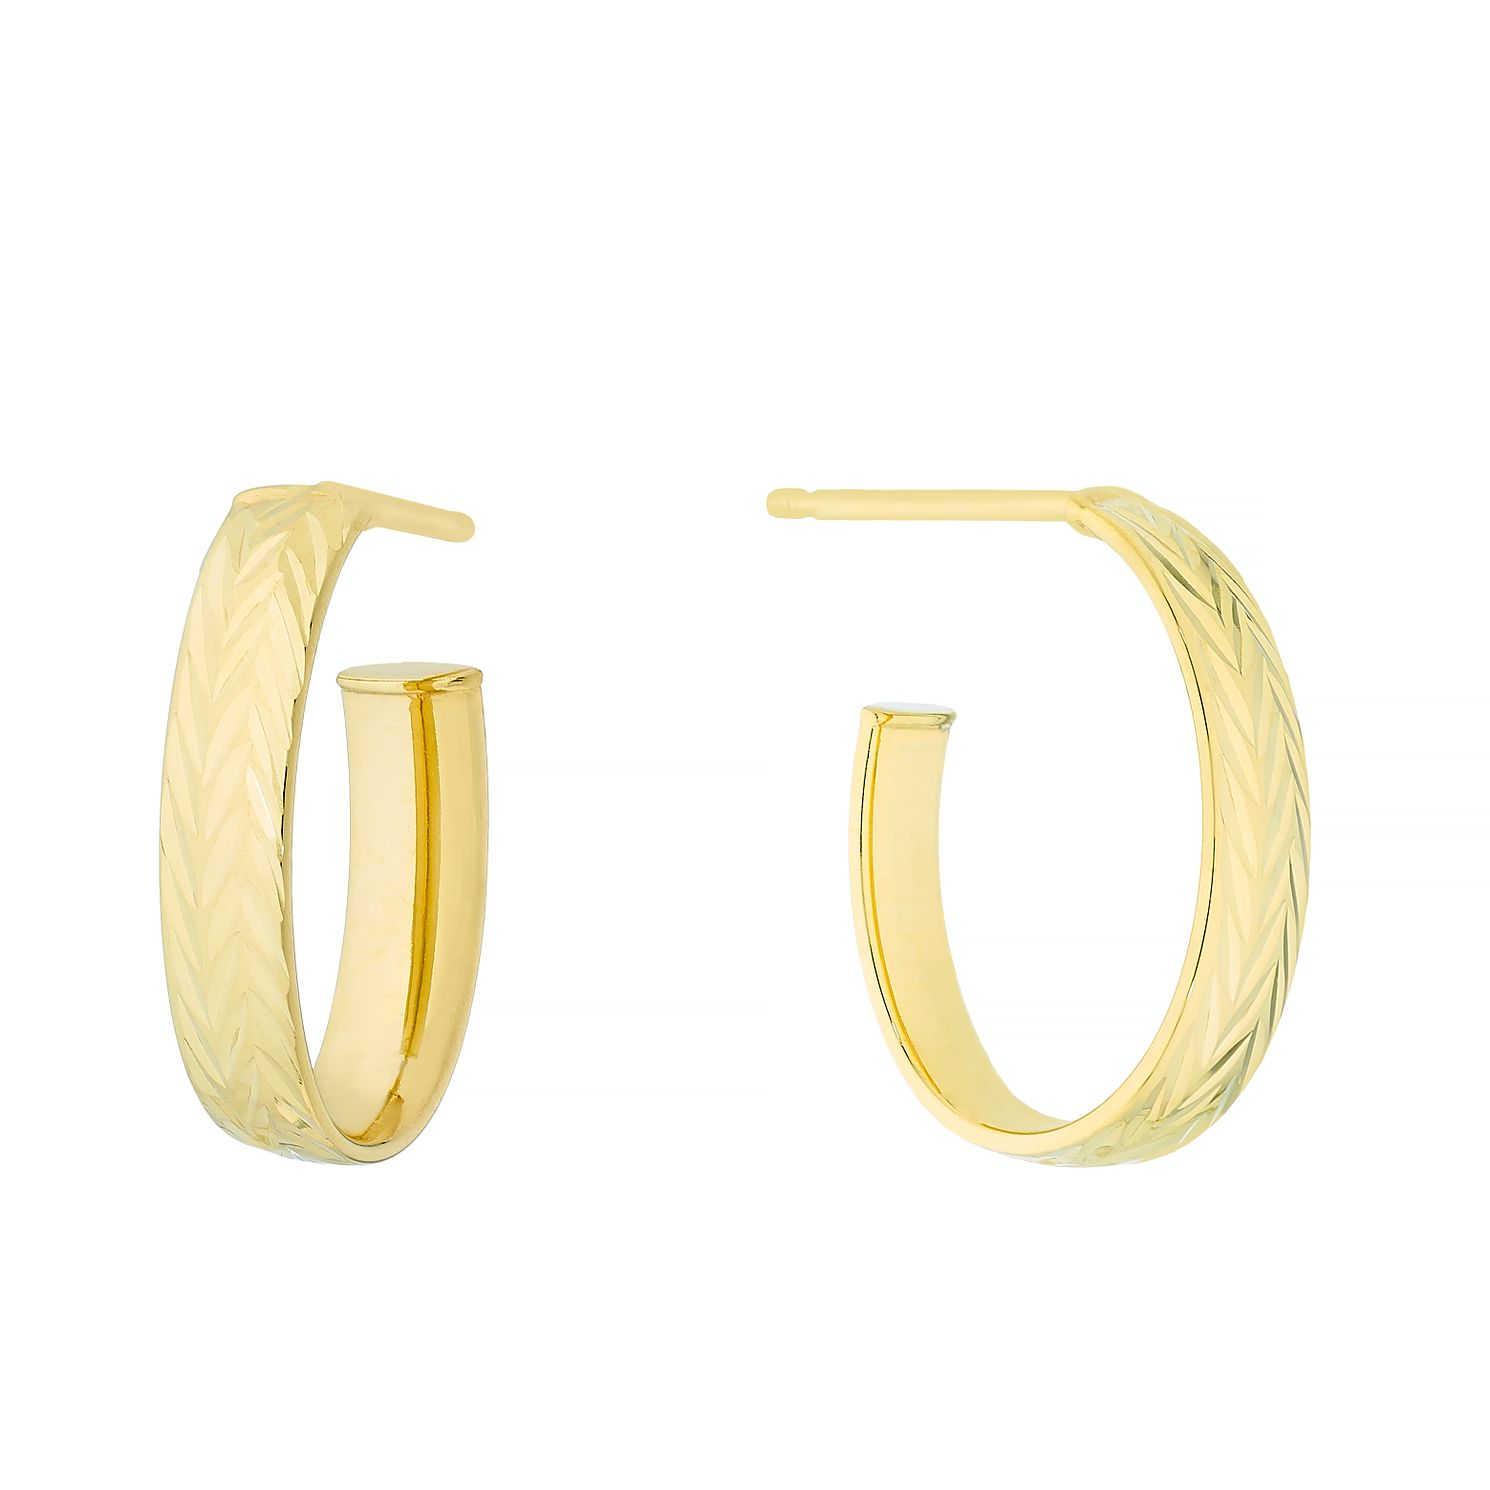 9ct Yellow Gold Diamond Cut 3/4 Hoop Earrings - Product number 4669983